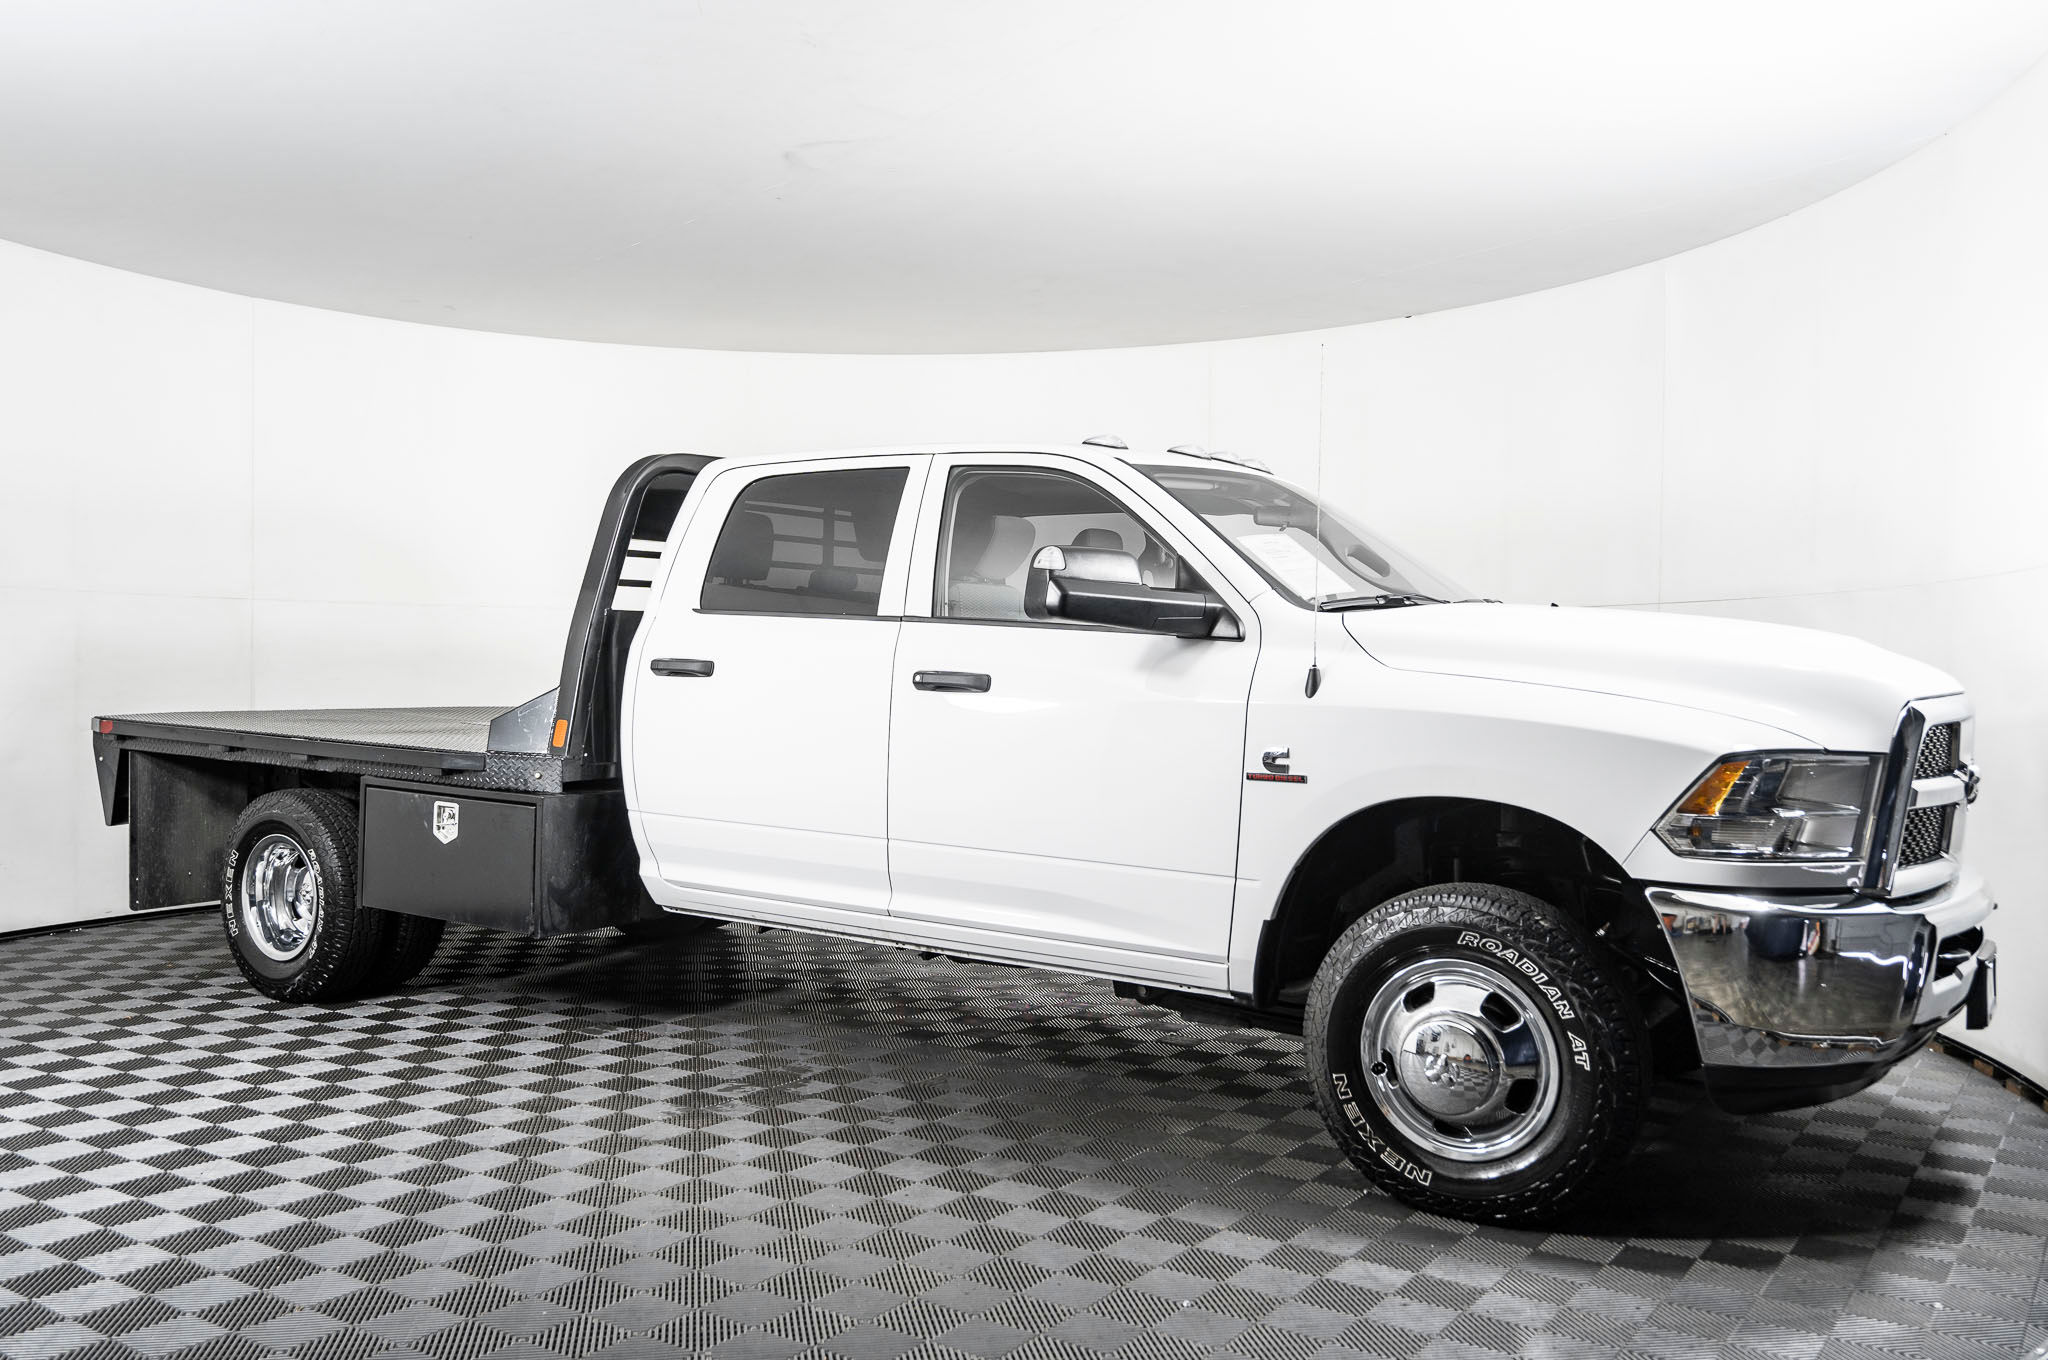 Used 2018 Dodge Ram 3500 Tradesman Flatbed Dually 4x4 Diesel Truck For Sale Northwest Motorsport